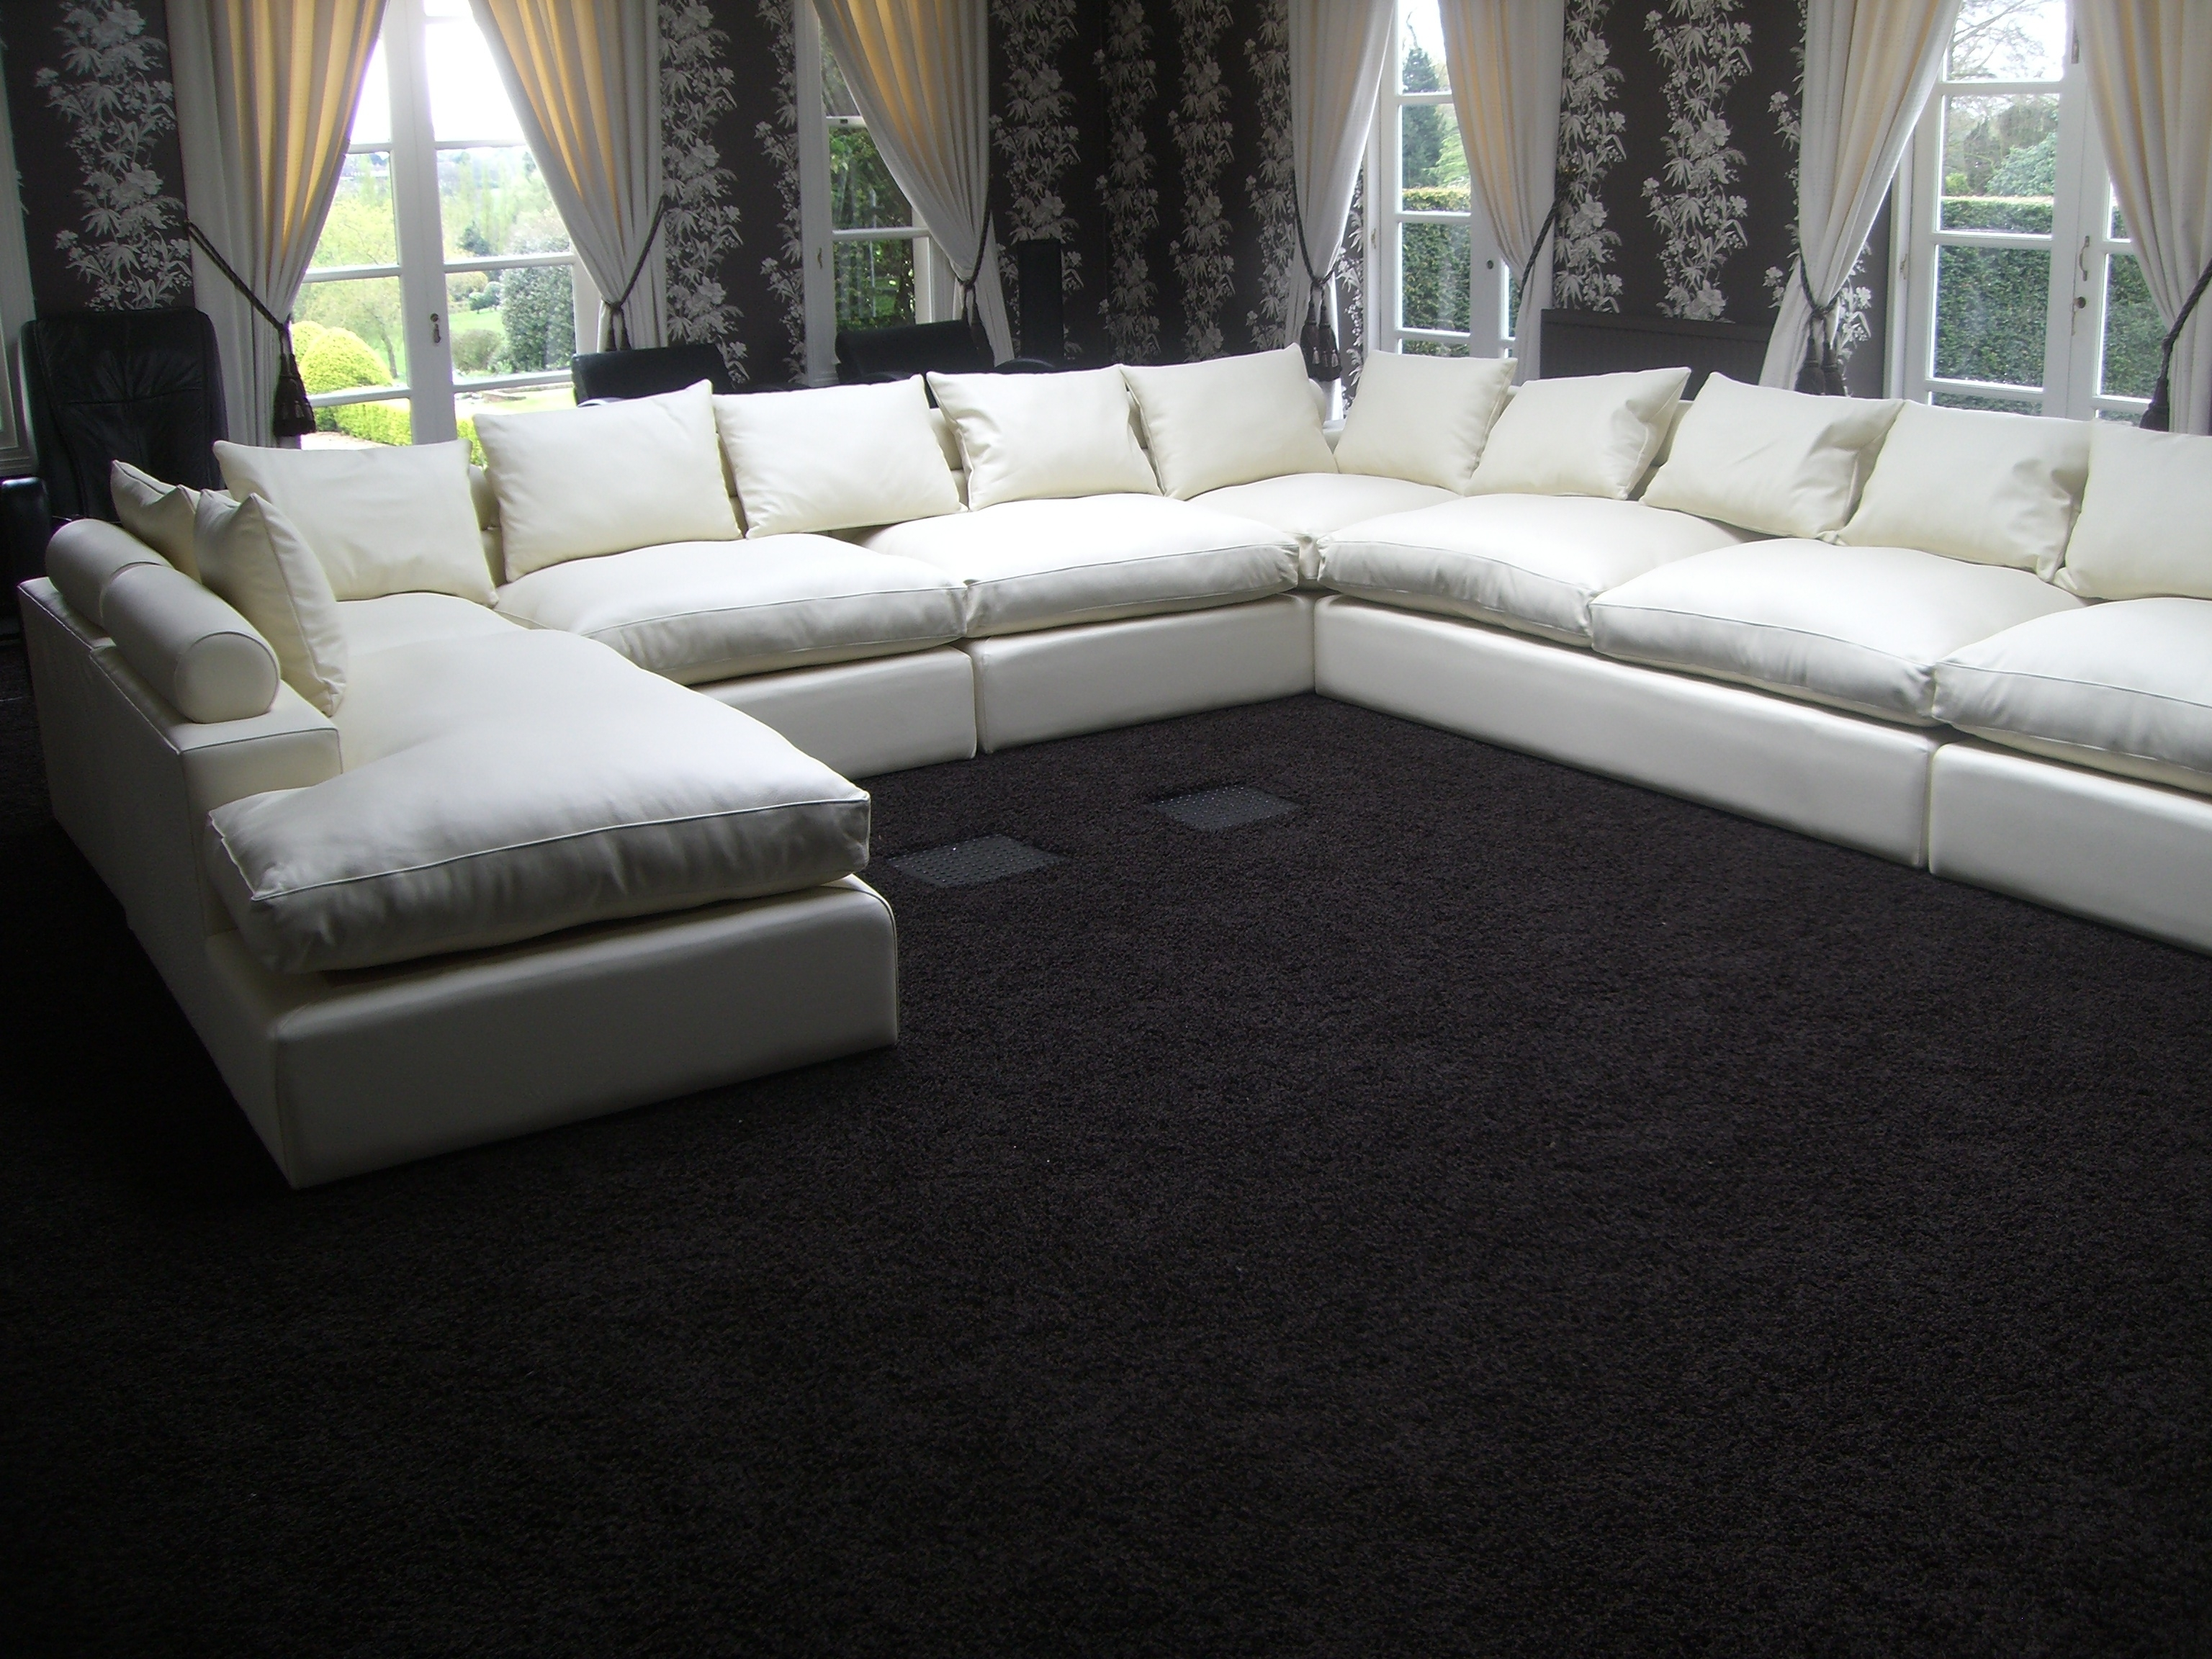 Current Large U Shaped Sofa – Fjellkjeden With Regard To Big U Shaped Sectionals (View 6 of 20)